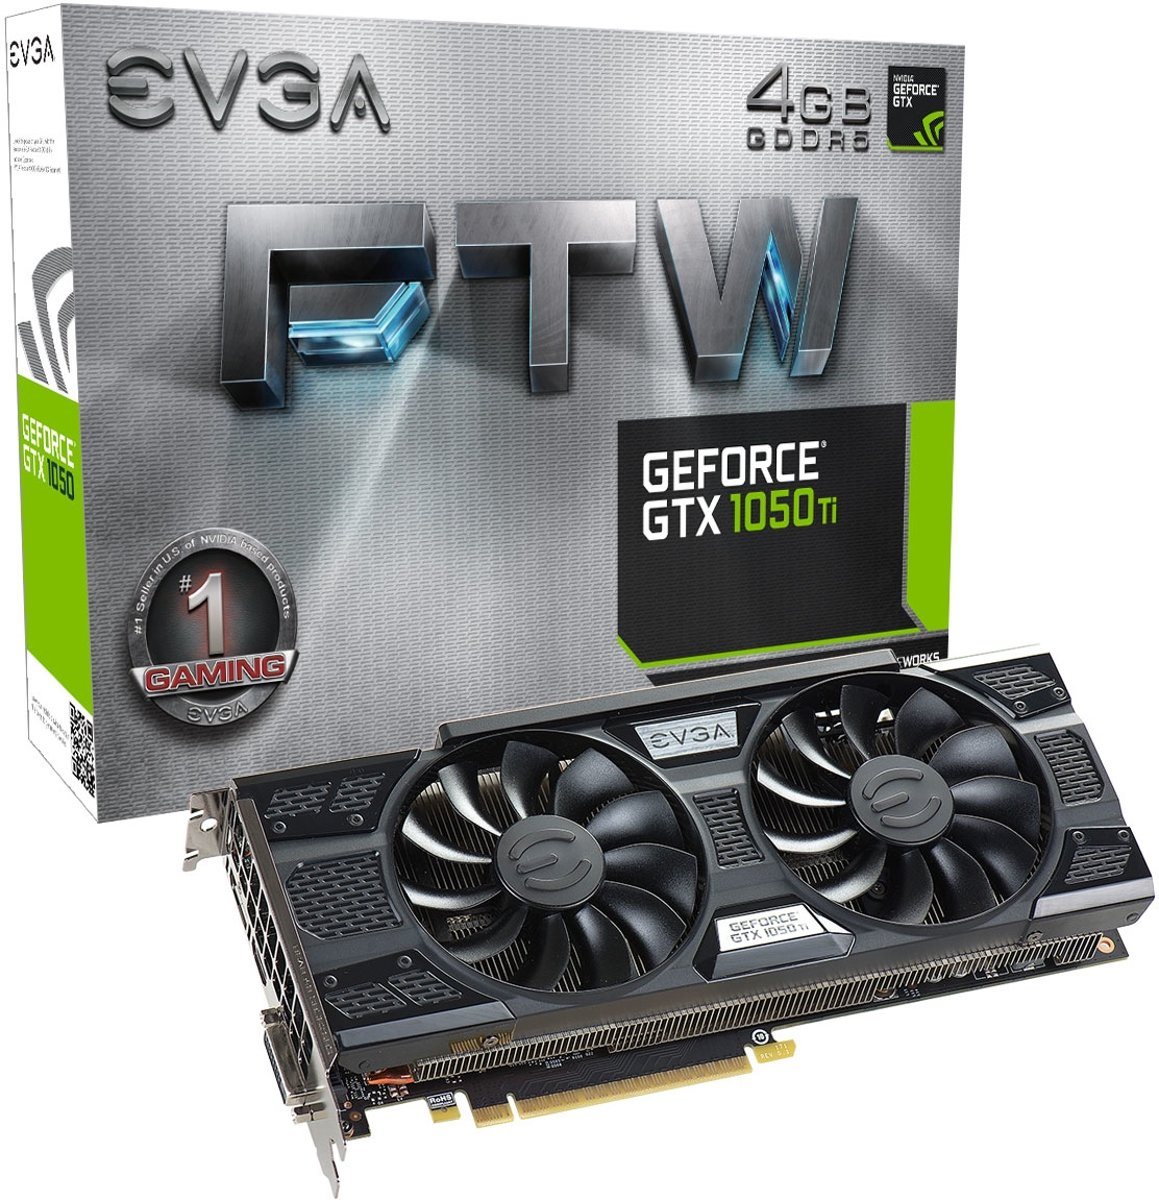 GeForce GTX 1050 Ti FTW GAMING ACX 3.0 GeForce GTX 1050 Ti 4GB GDDR5